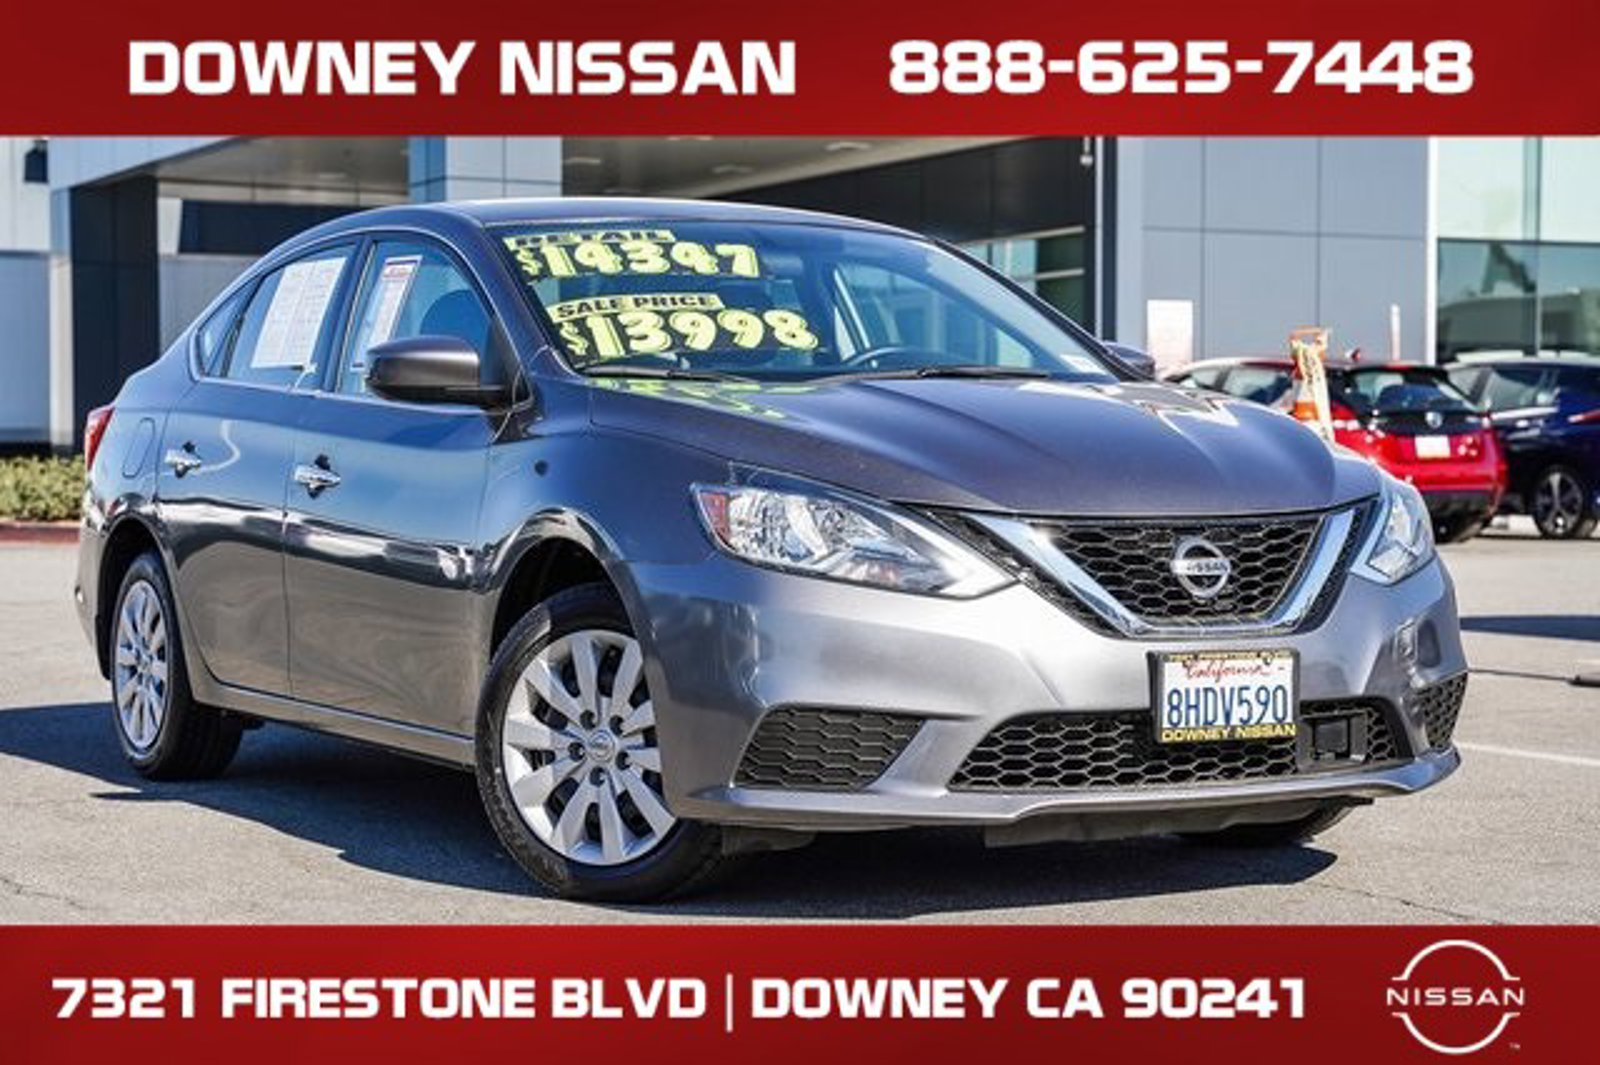 2019 Nissan Sentra S S CVT Regular Unleaded I-4 1.8 L/110 [1]